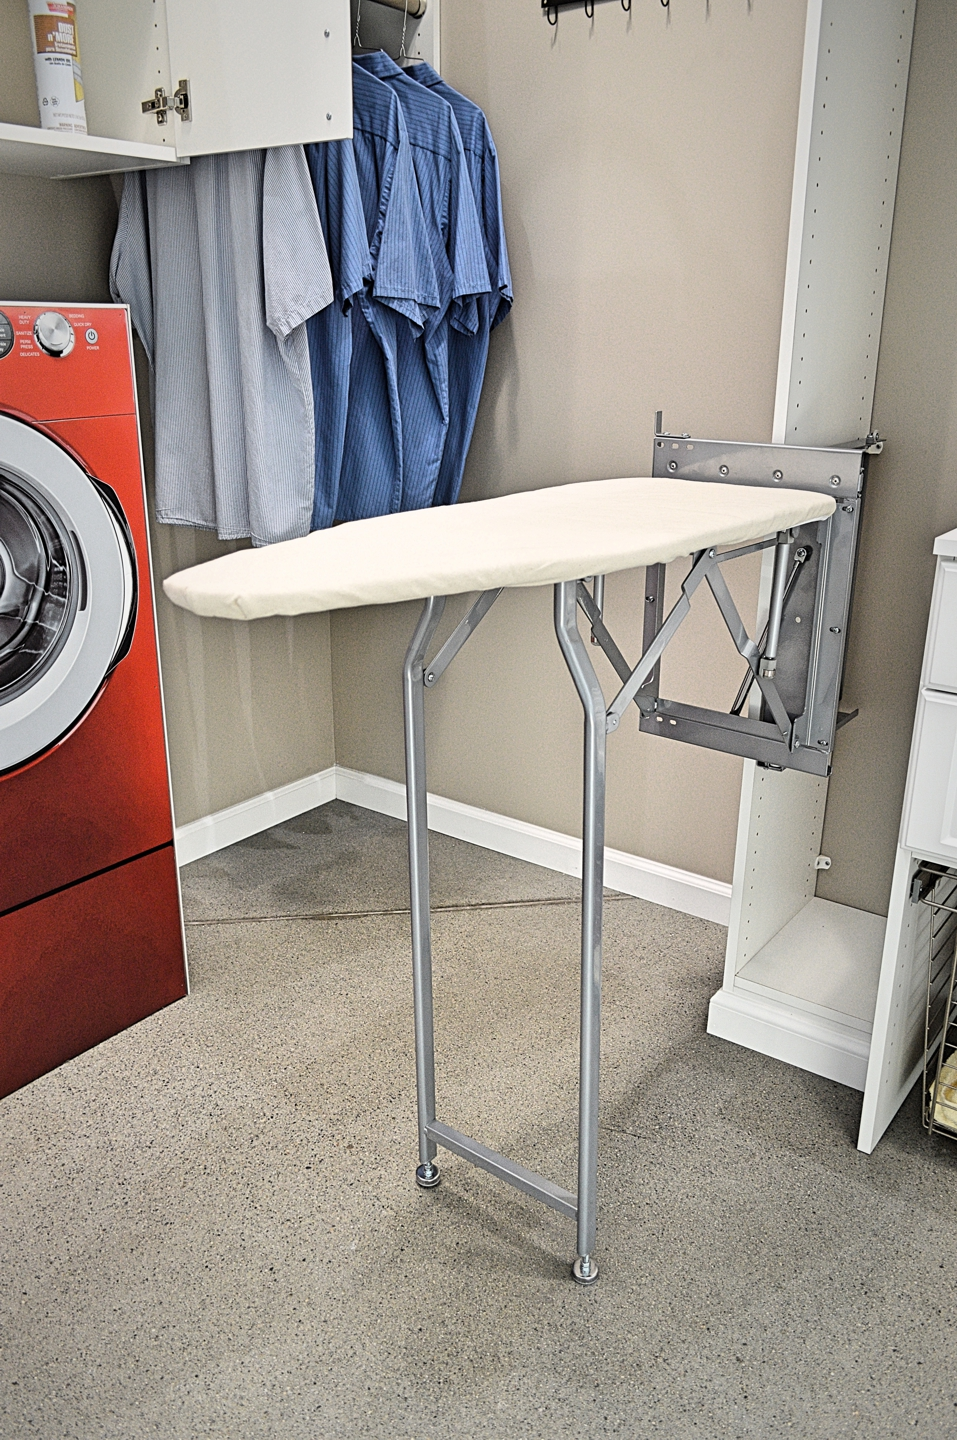 hide-away ironing board